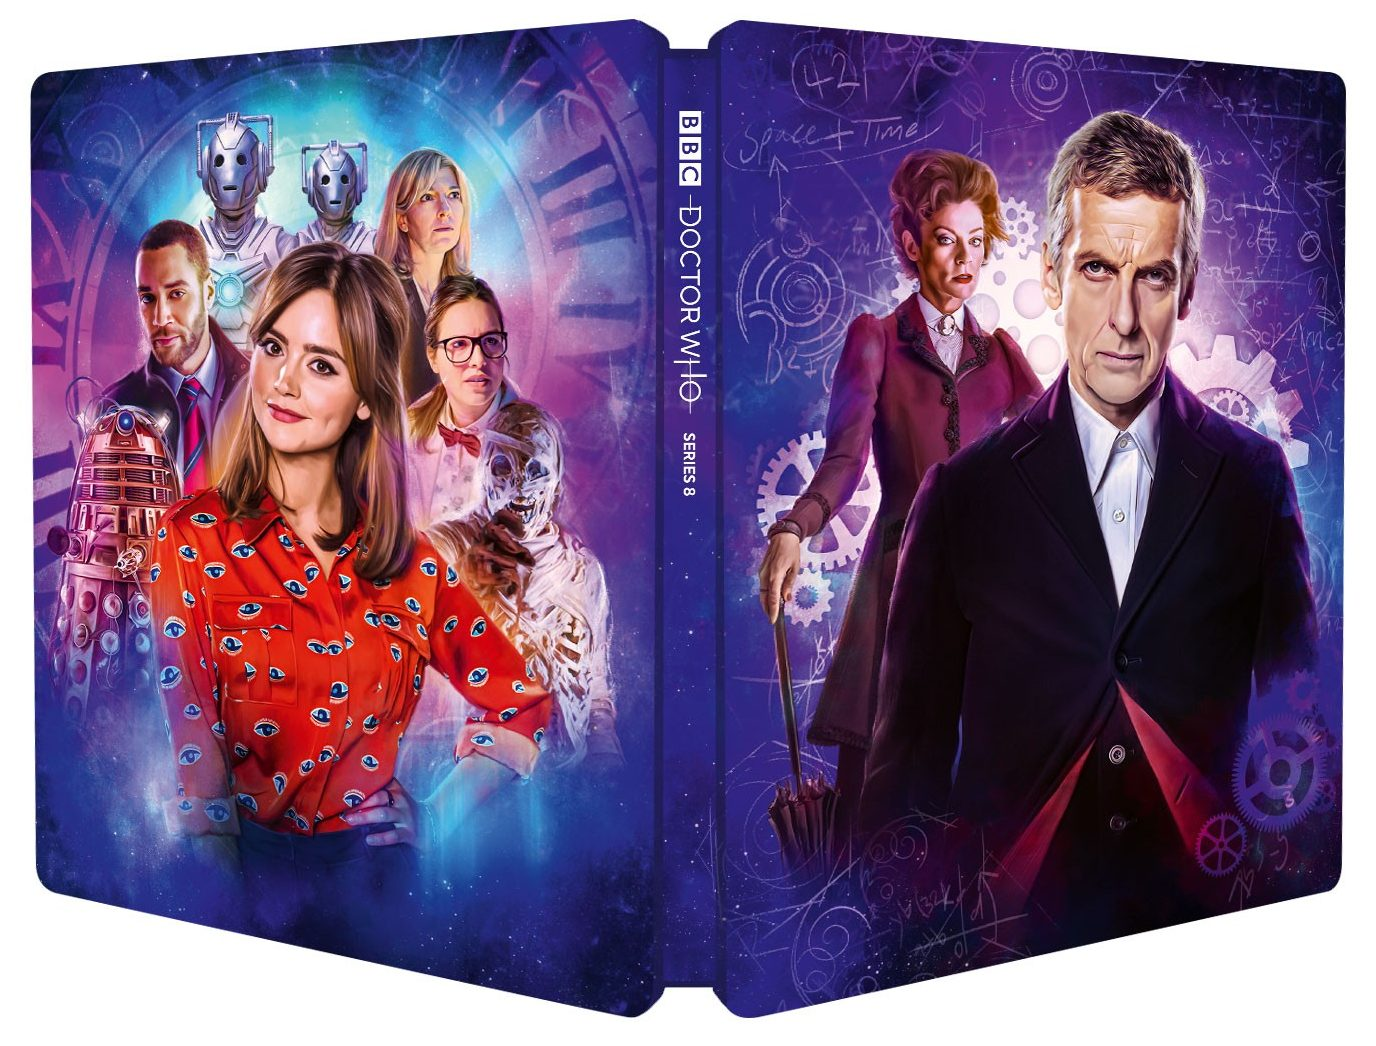 Doctor Who Series 8 Steelbook. Cover by Sophie Cowdrey (c) BBC Studios Twelfth Doctor Clara Oswald Missy Michelle Gomez Peter Capaldi Jenna Coleman Blu-ray